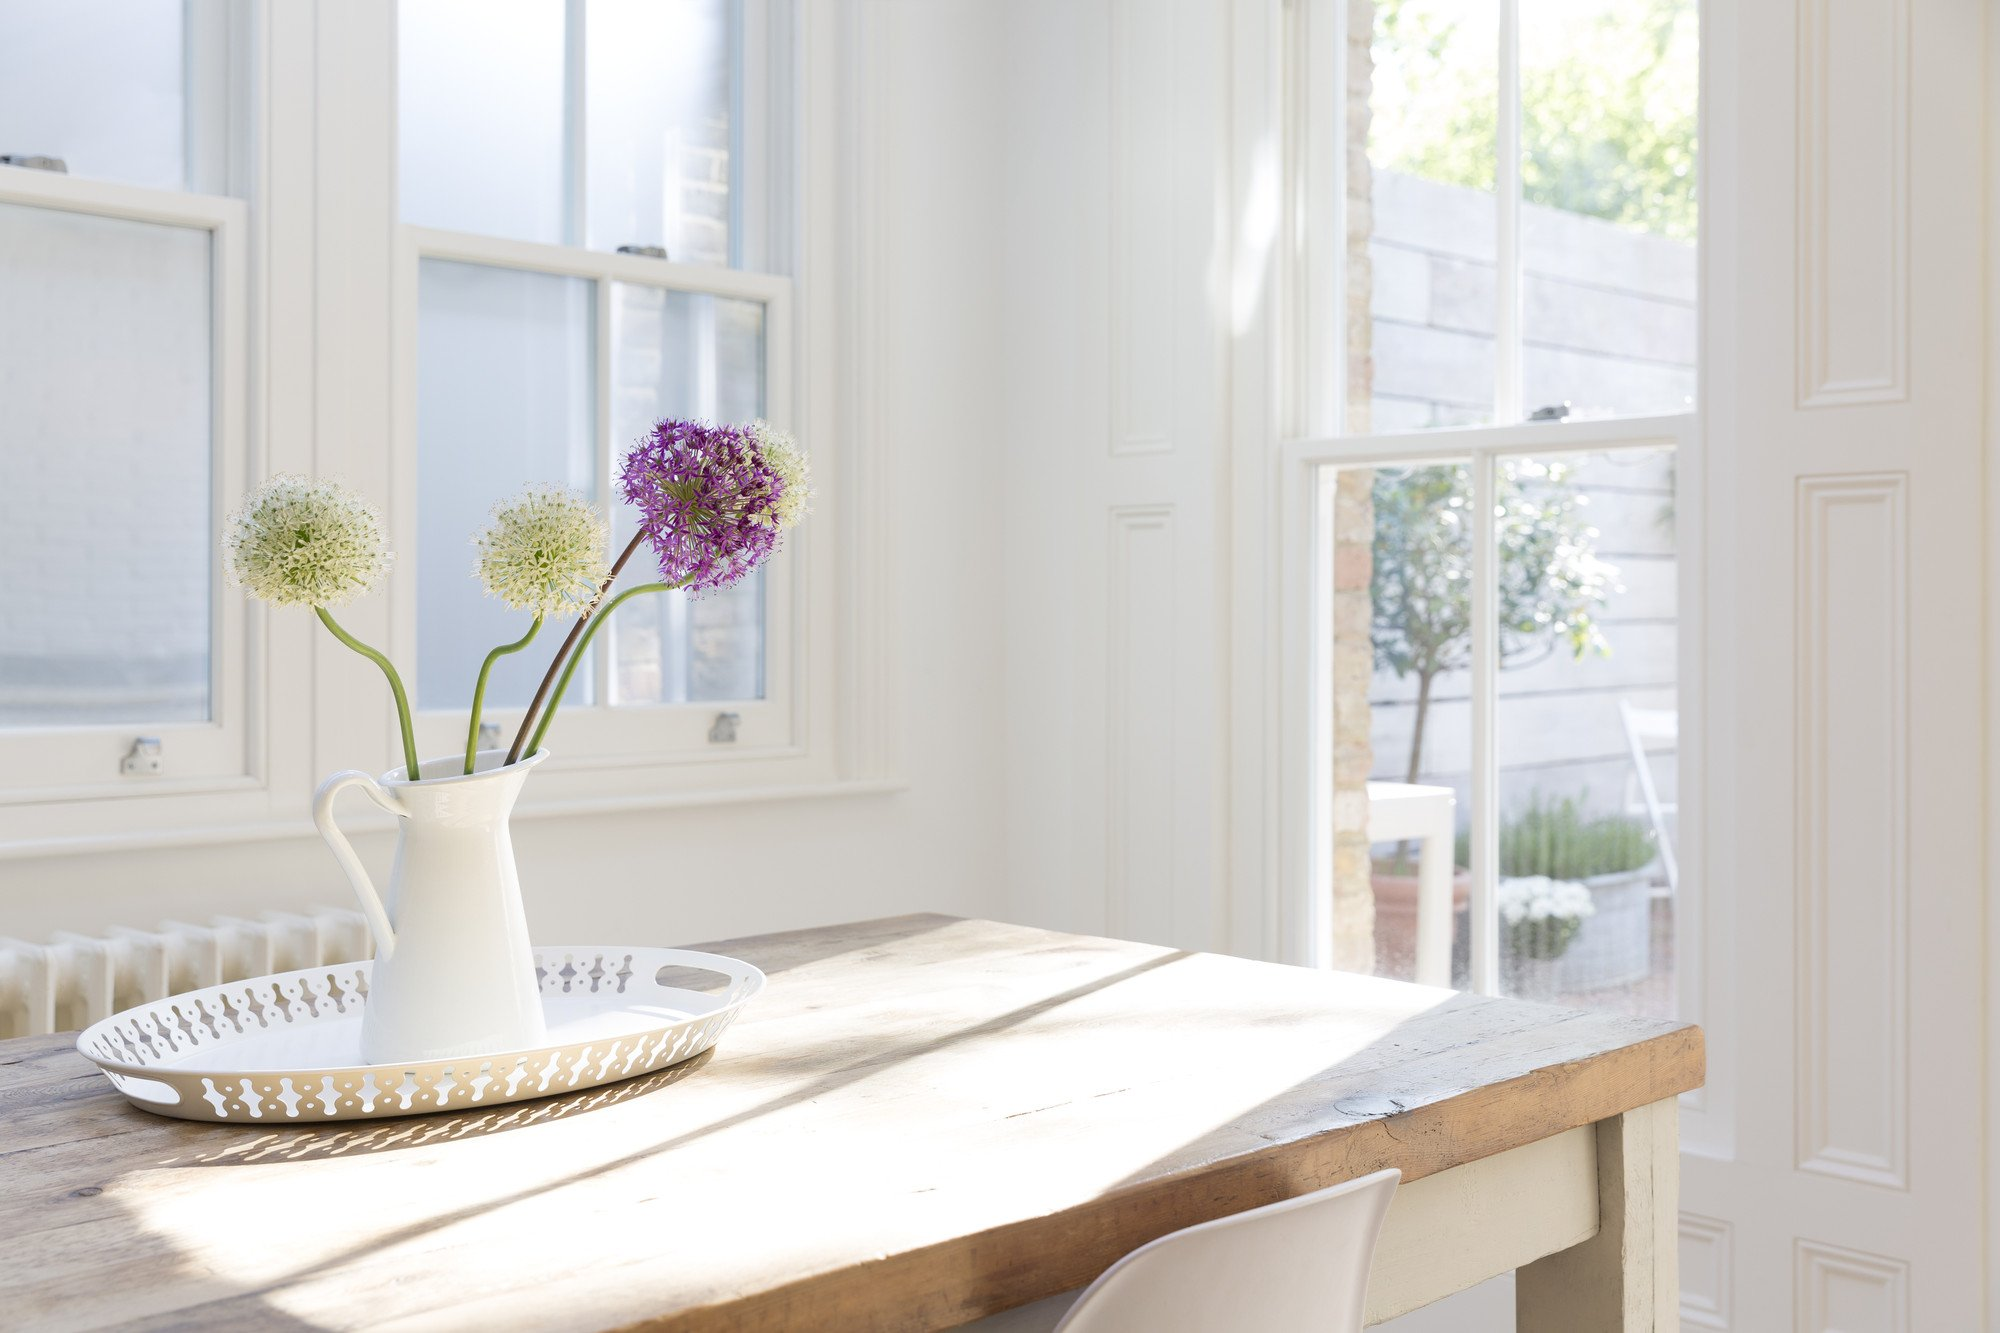 Kitchen with windows, flowers on table